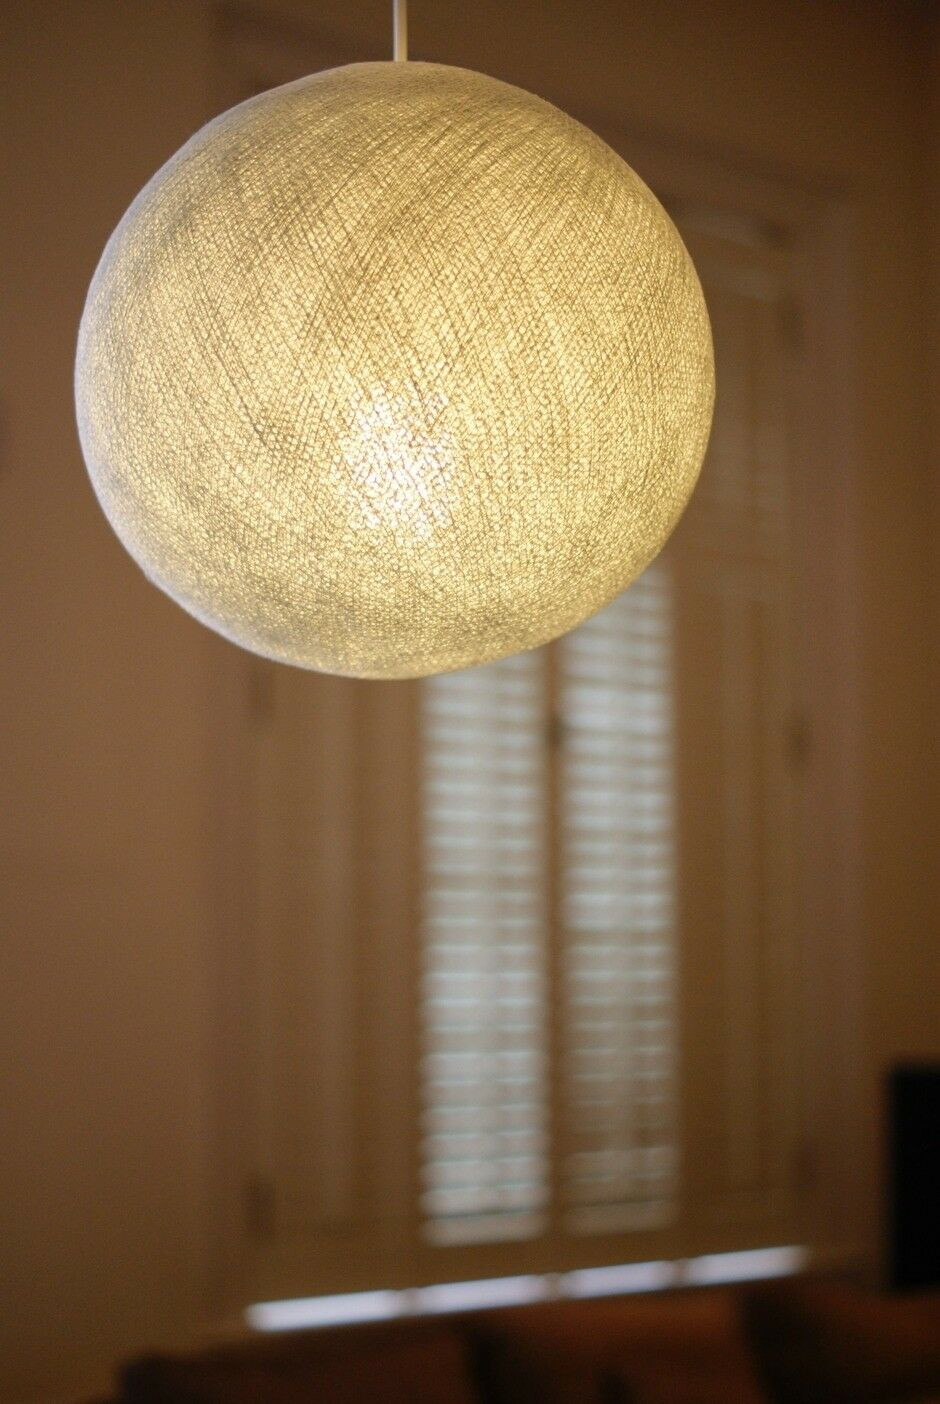 ball light shade. item specifics ball light shade n